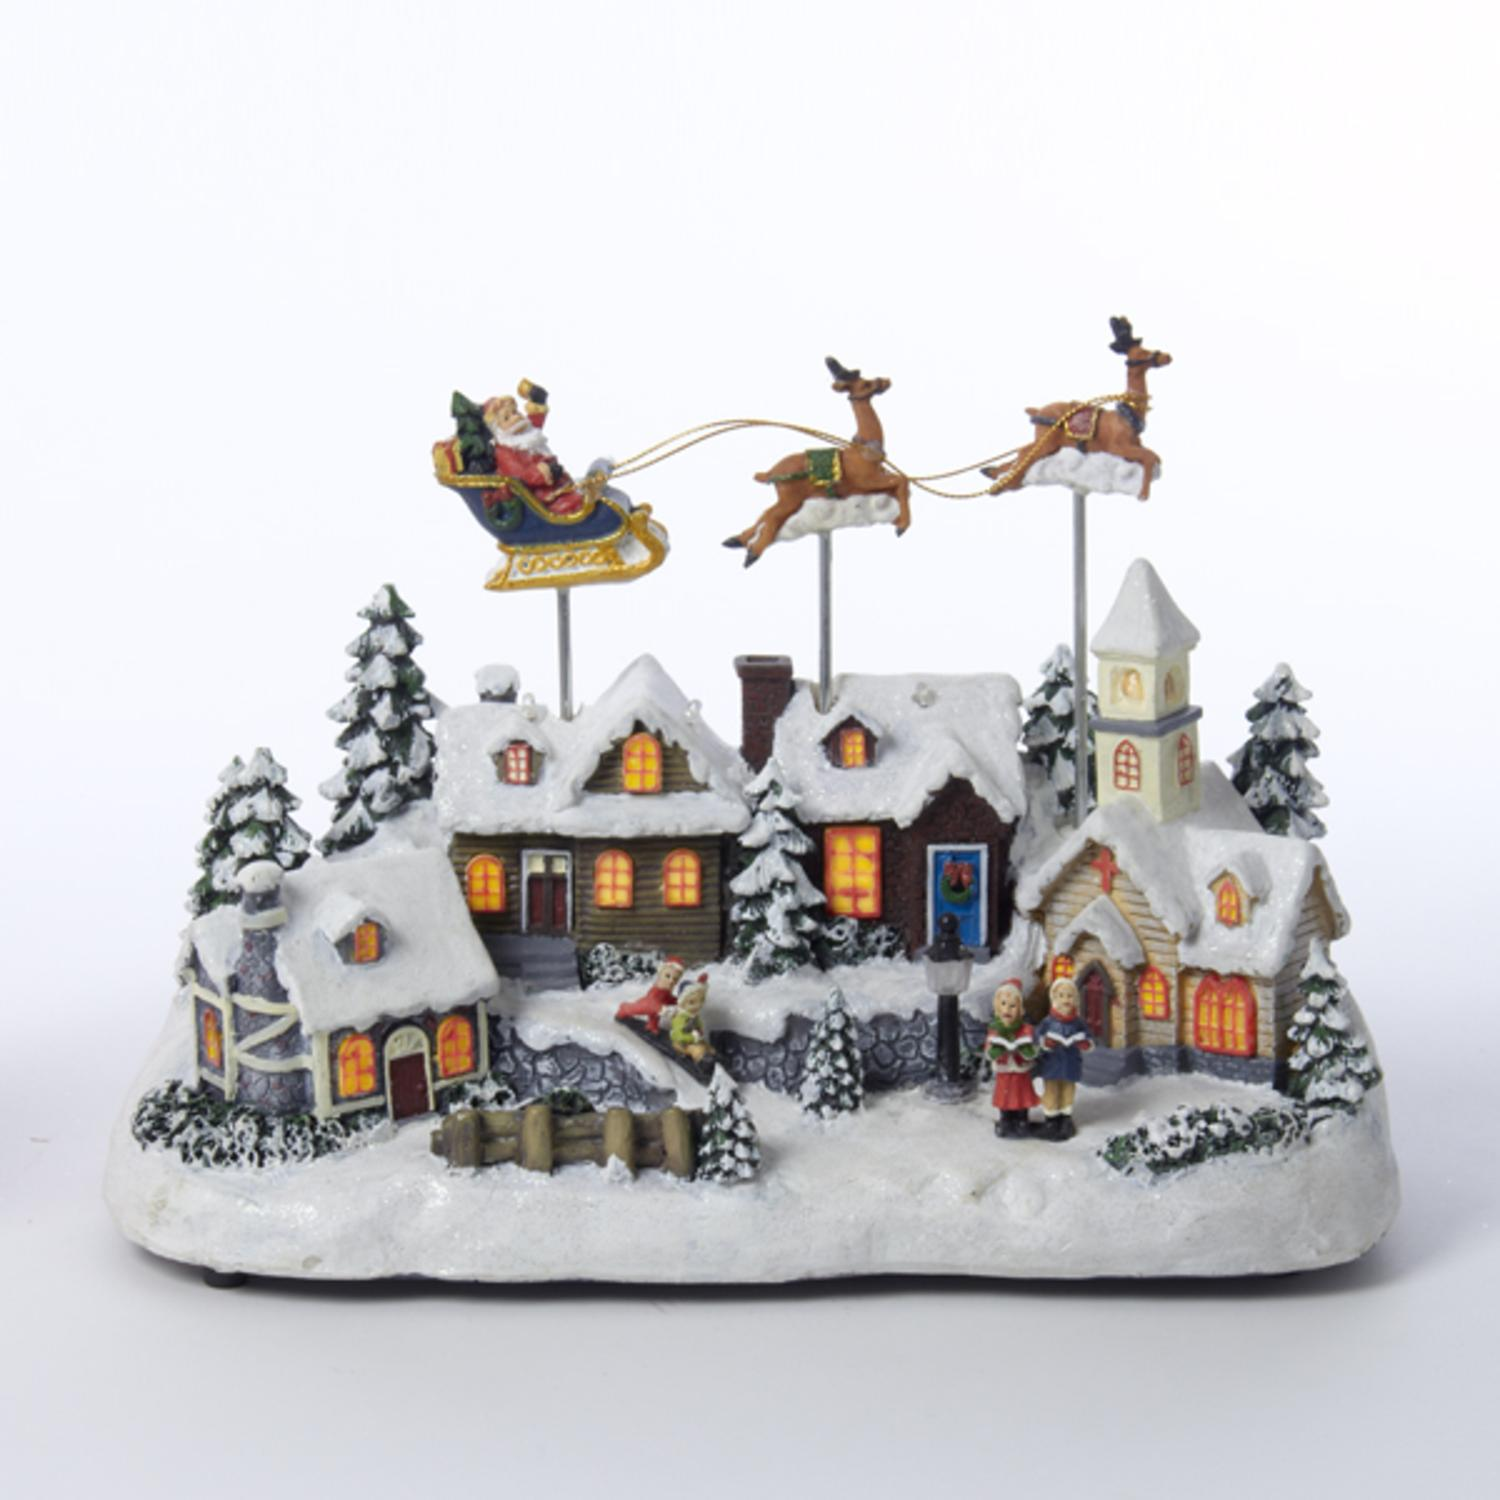 "11"" Decorative Battery Operated Musical Christmas LED Village with Moving Santa and Deer"